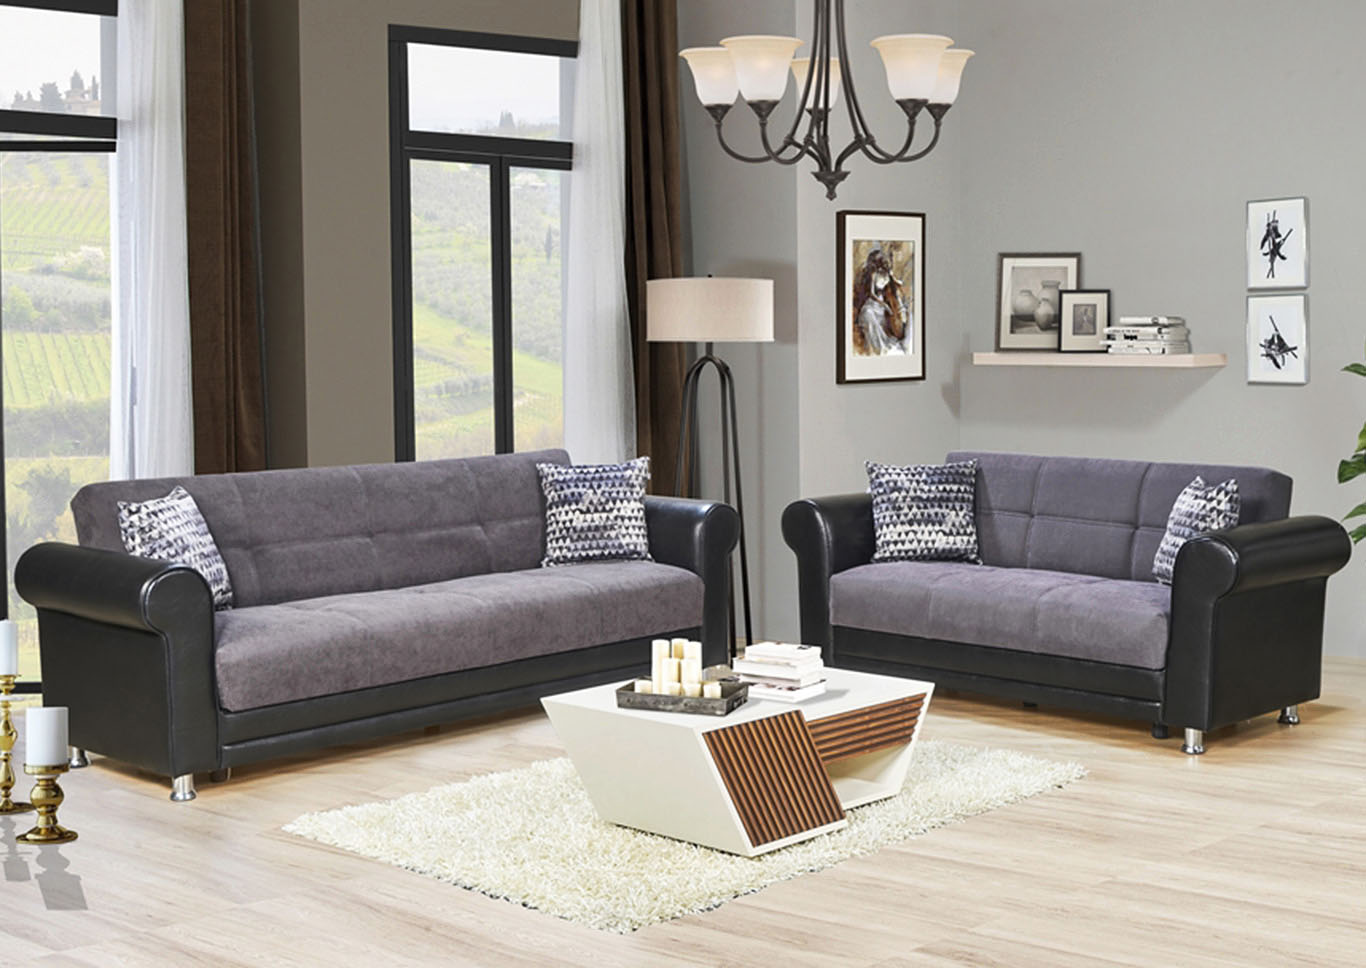 Avalanche Gray Chenille Sofabed & Loveseat,CasaMode Functional Furniture